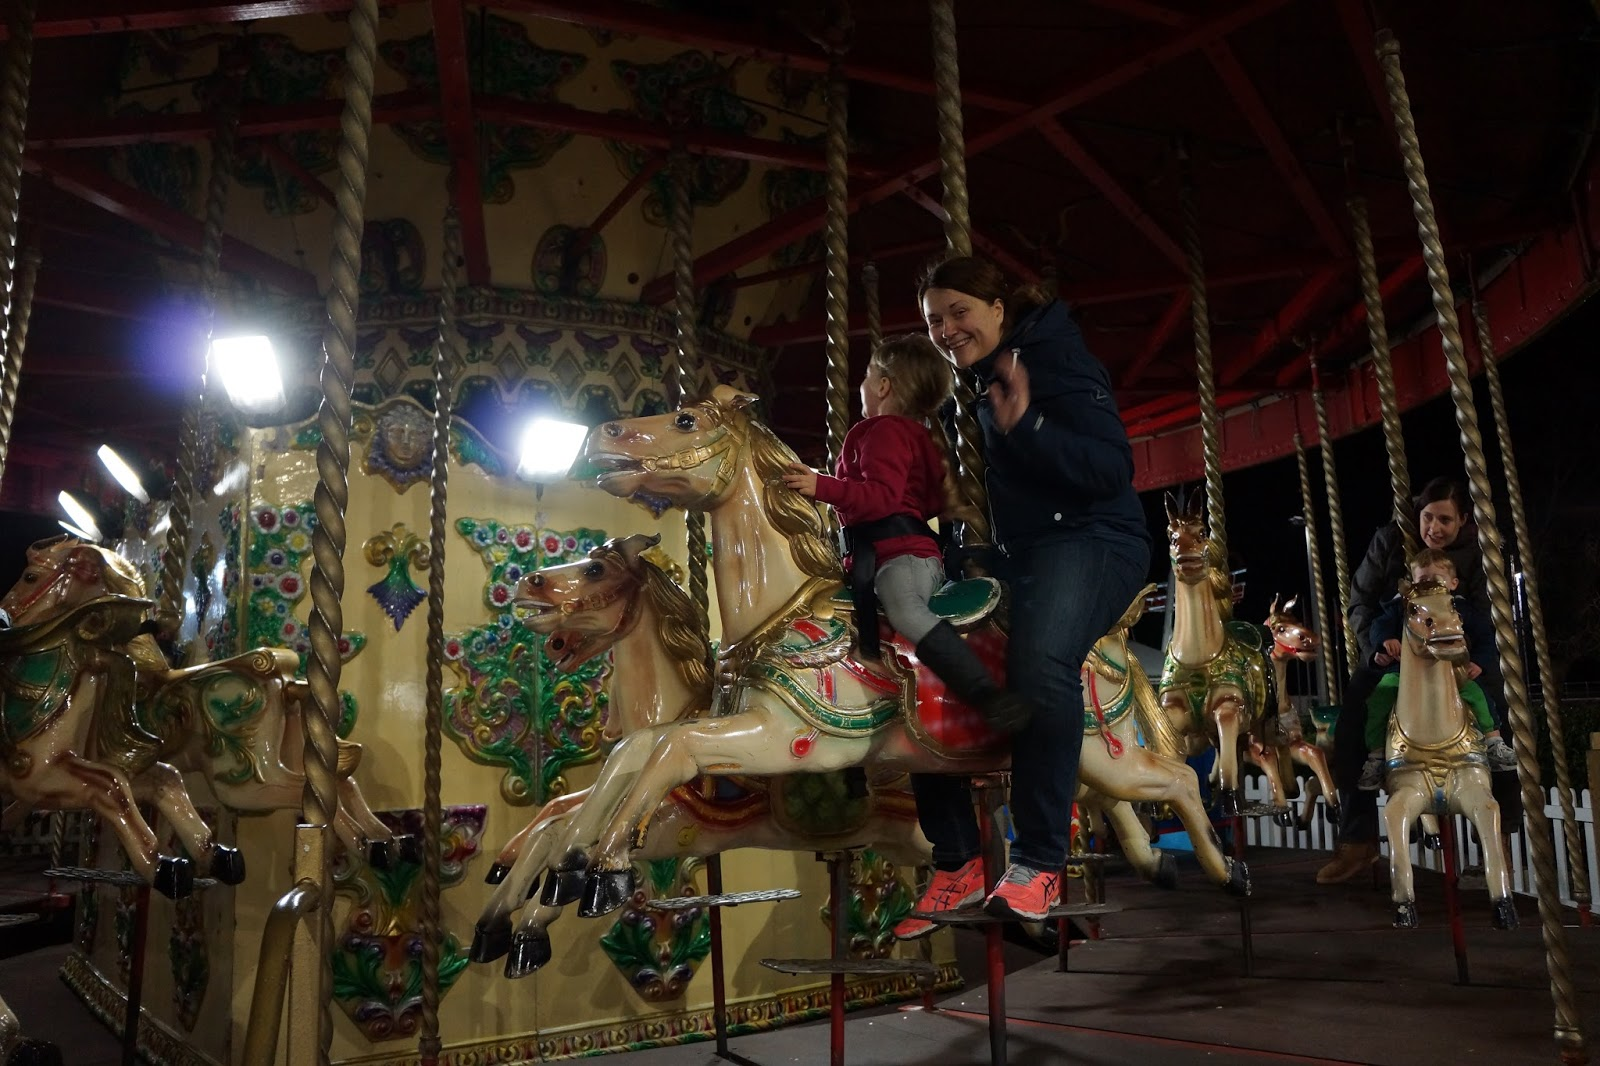 mum and daughter riding a horse on a merry go around at dark at butlins minehead